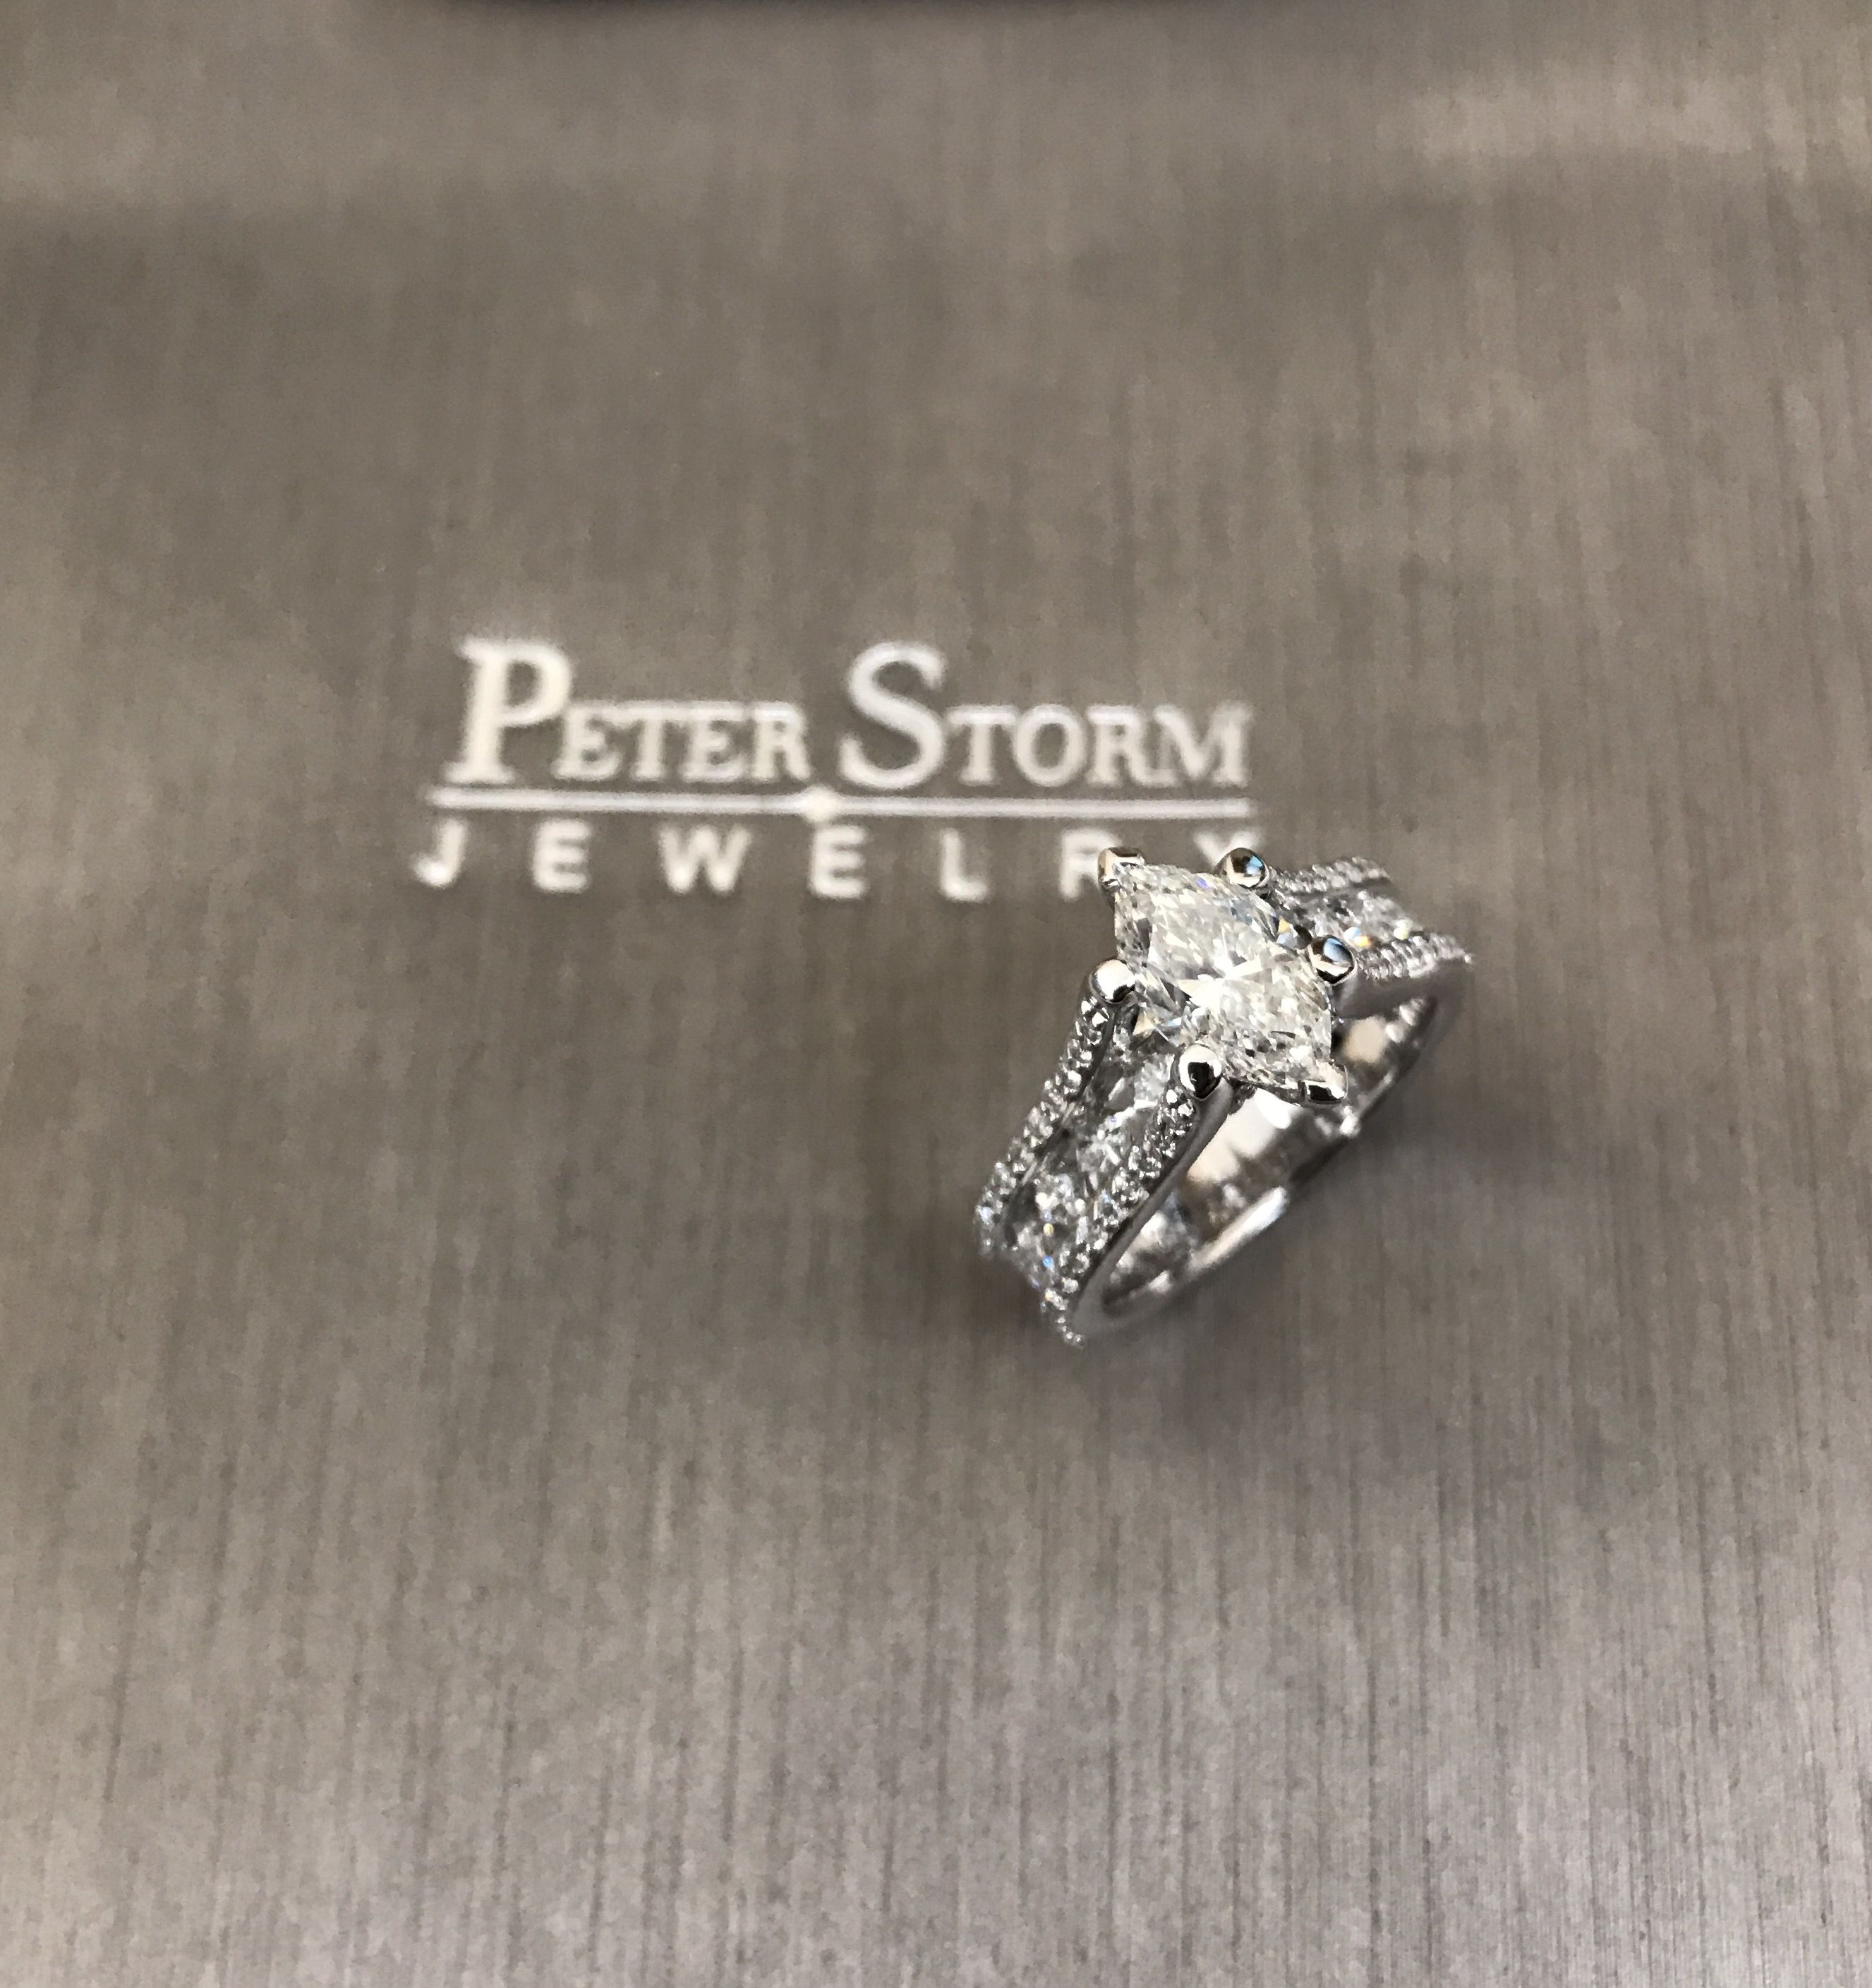 Sublime engagement ring with a beautiful special marquise diamond center  #Style WS174WD #peterstormjewelry #engagementring #engagement #marquise #bride #bridetobe #diamondring #wedding #sparkle #fiance #nofilter #life #love #hot #special #friday